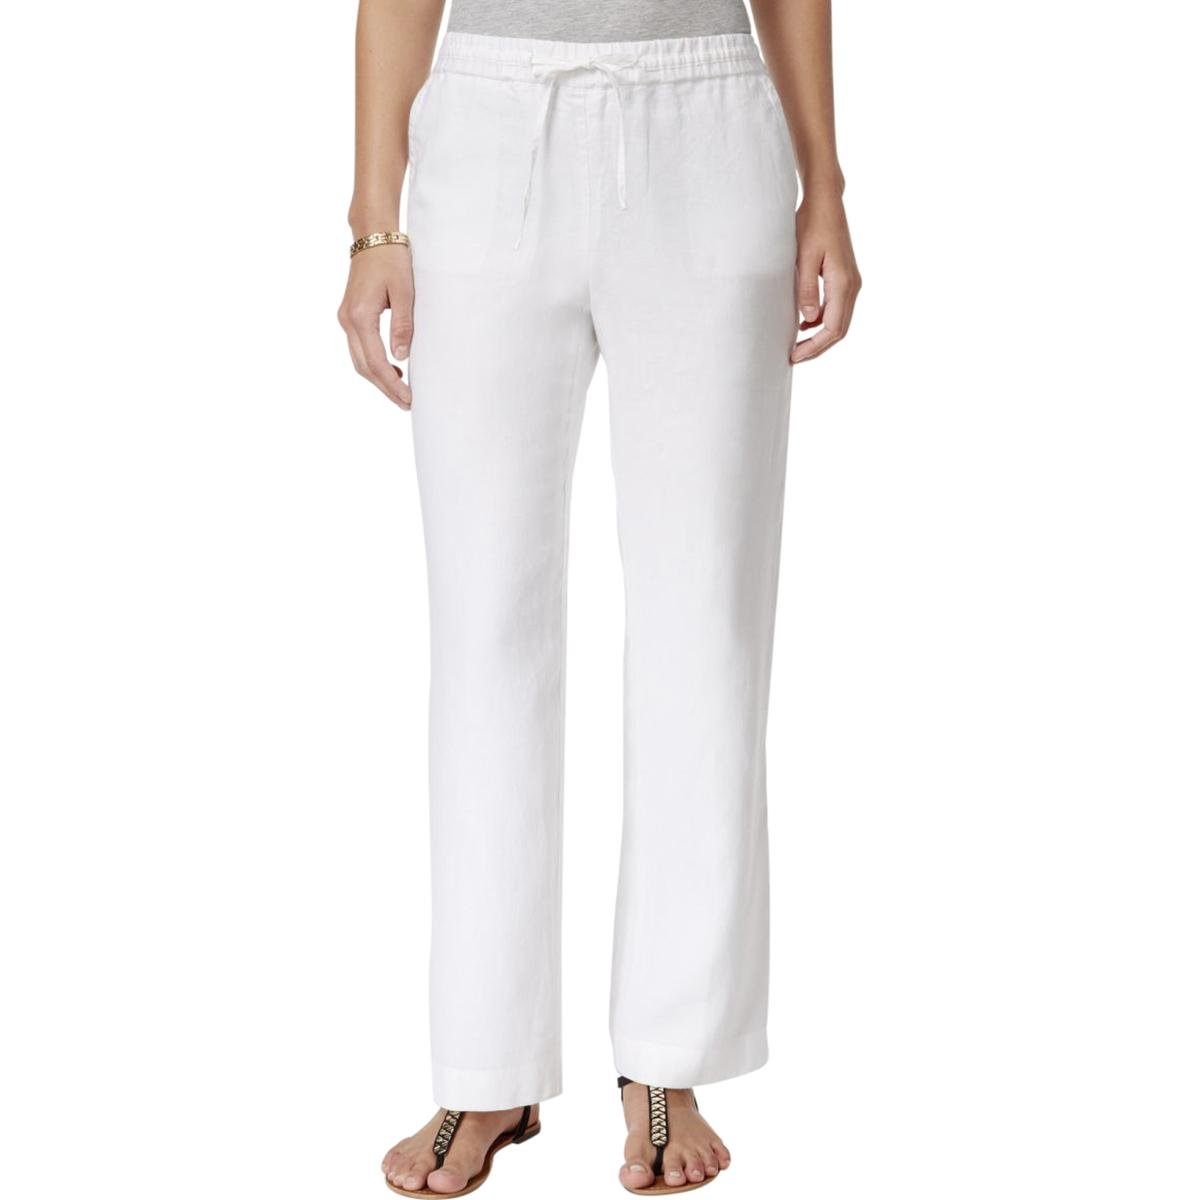 e47be1a87e Top 10 wholesale Pull On Linen Pants - Chinabrands.com